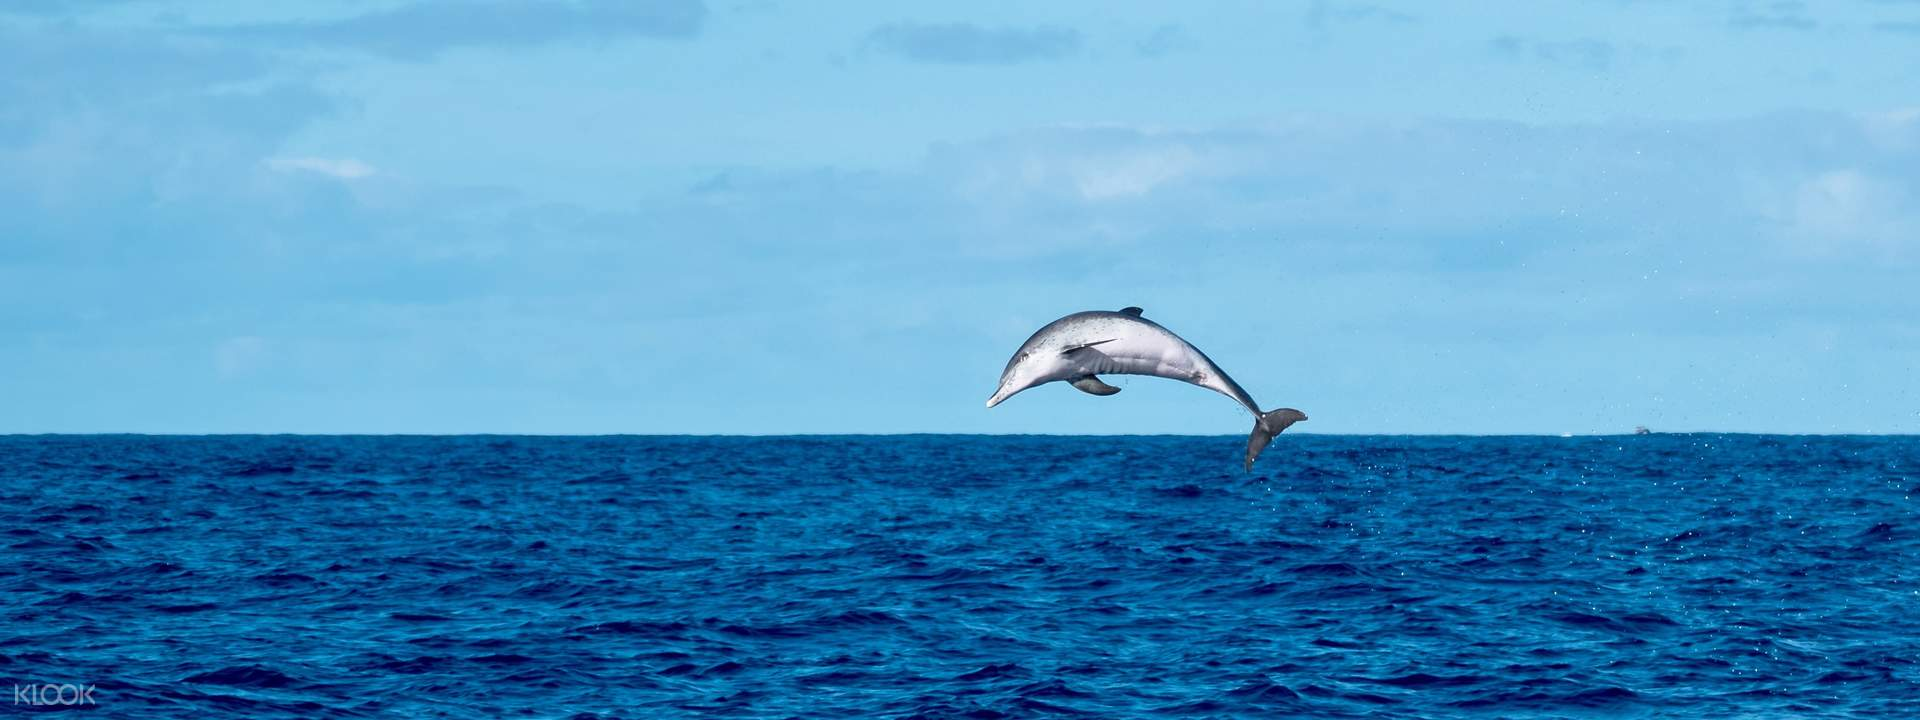 Dolphin Spotting Tour - Klook